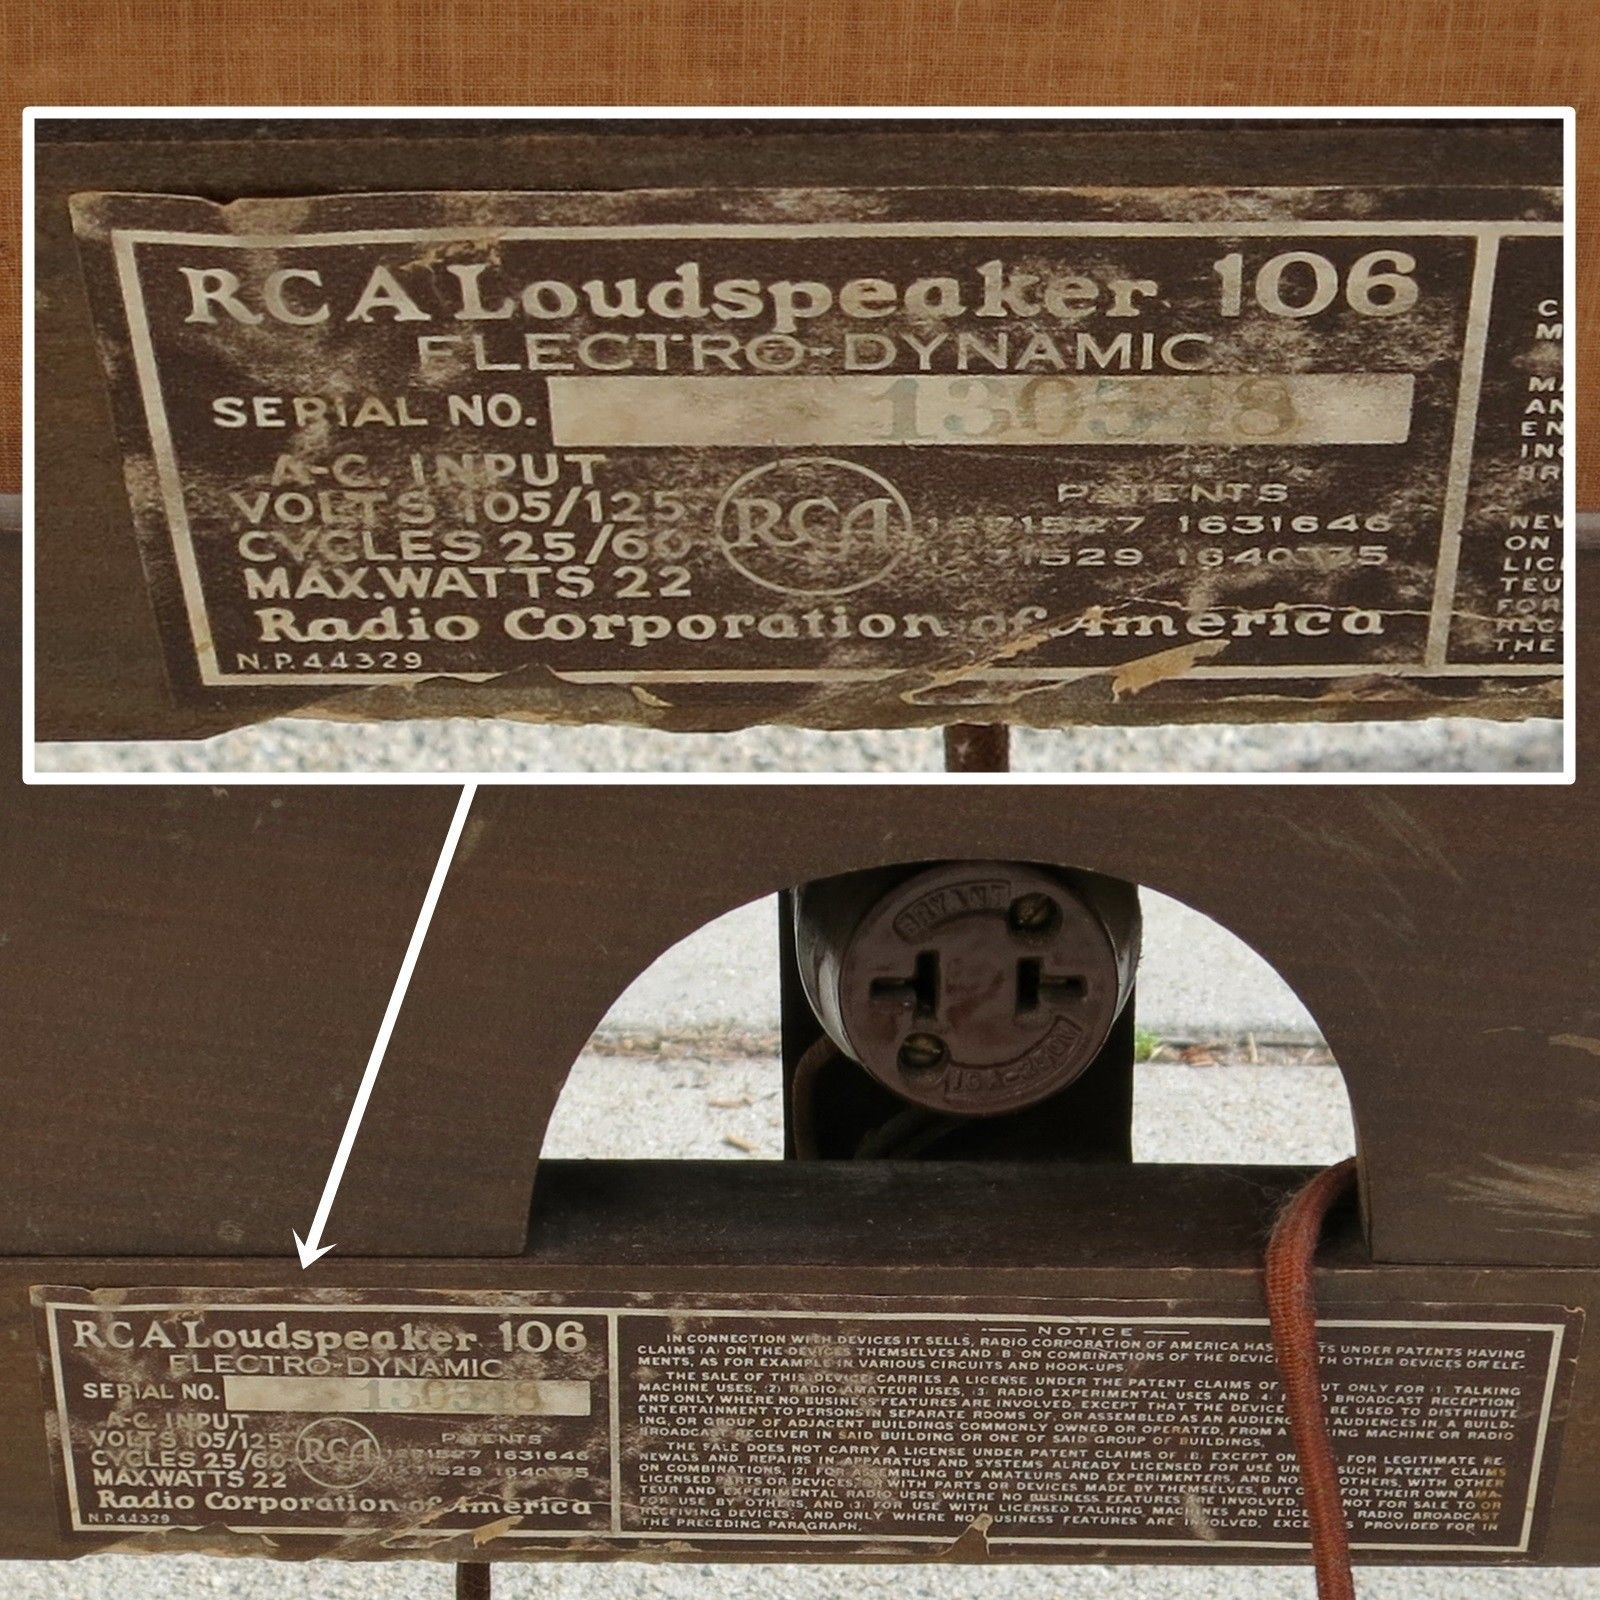 Our RCA Loudspeaker 106: How the First Electronic Instrument